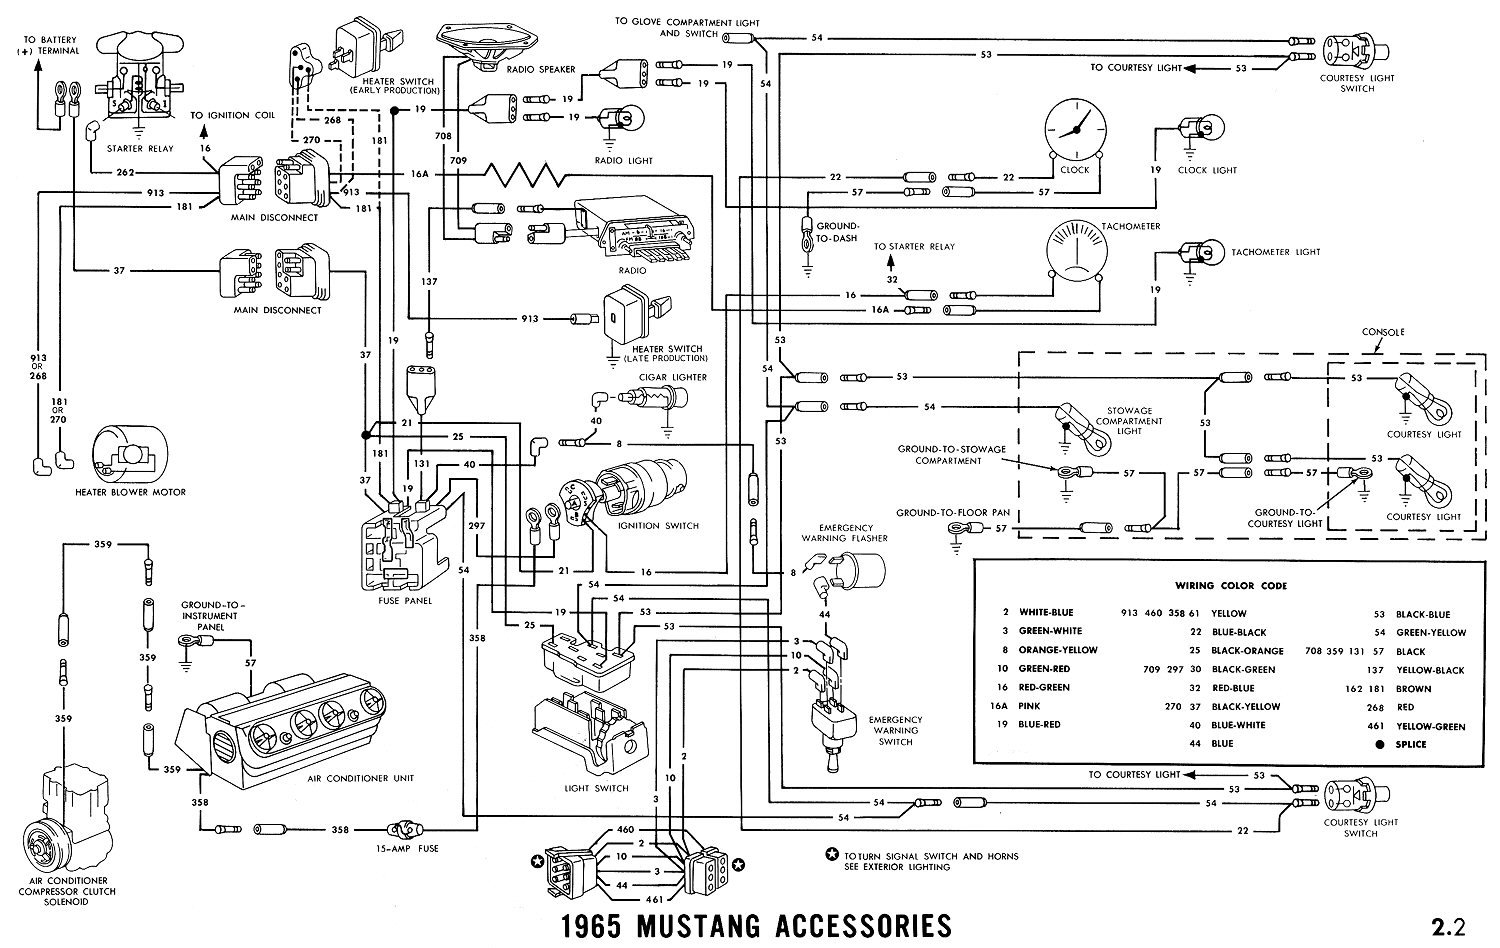 1965 Mustang Radio Wiring Harness Online Schematics Diagram Sound System Connections Ford Forum Tundra